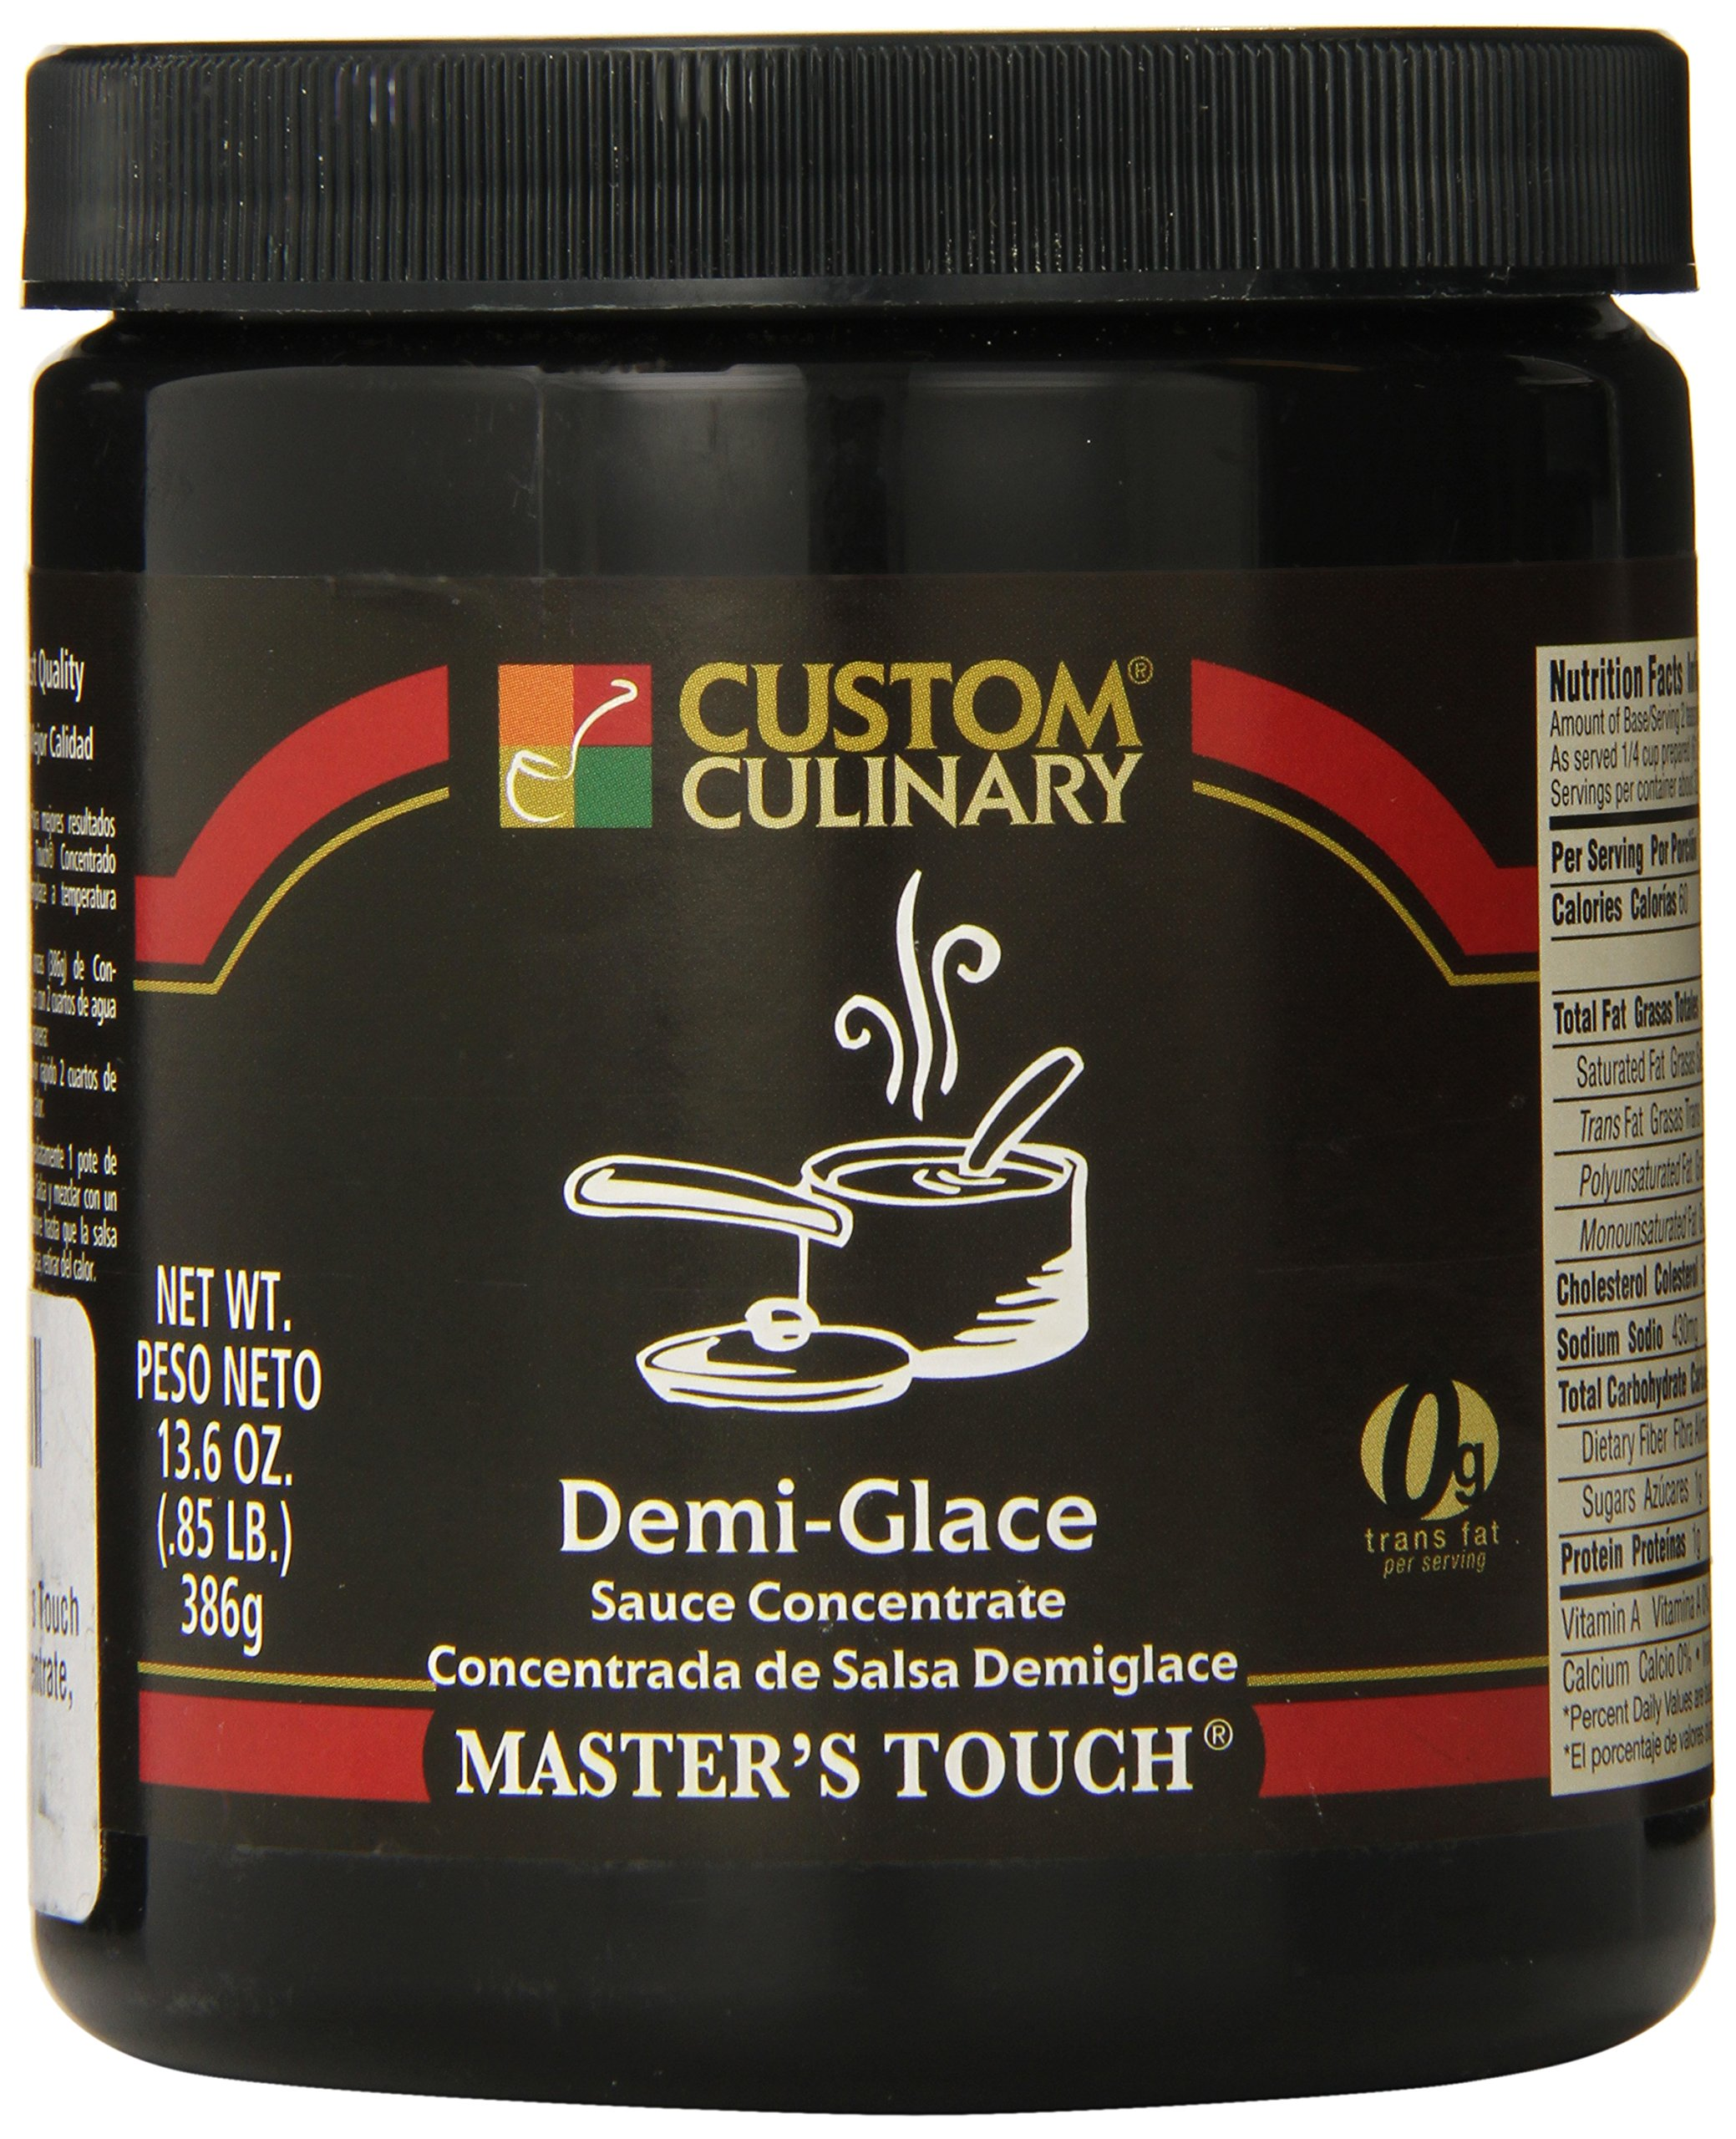 Amazon.com : Custom Culinary Masters Touh Concentrate, Demi Glace Sauce, 13.6 Ounce : Grocery & Gourmet Food